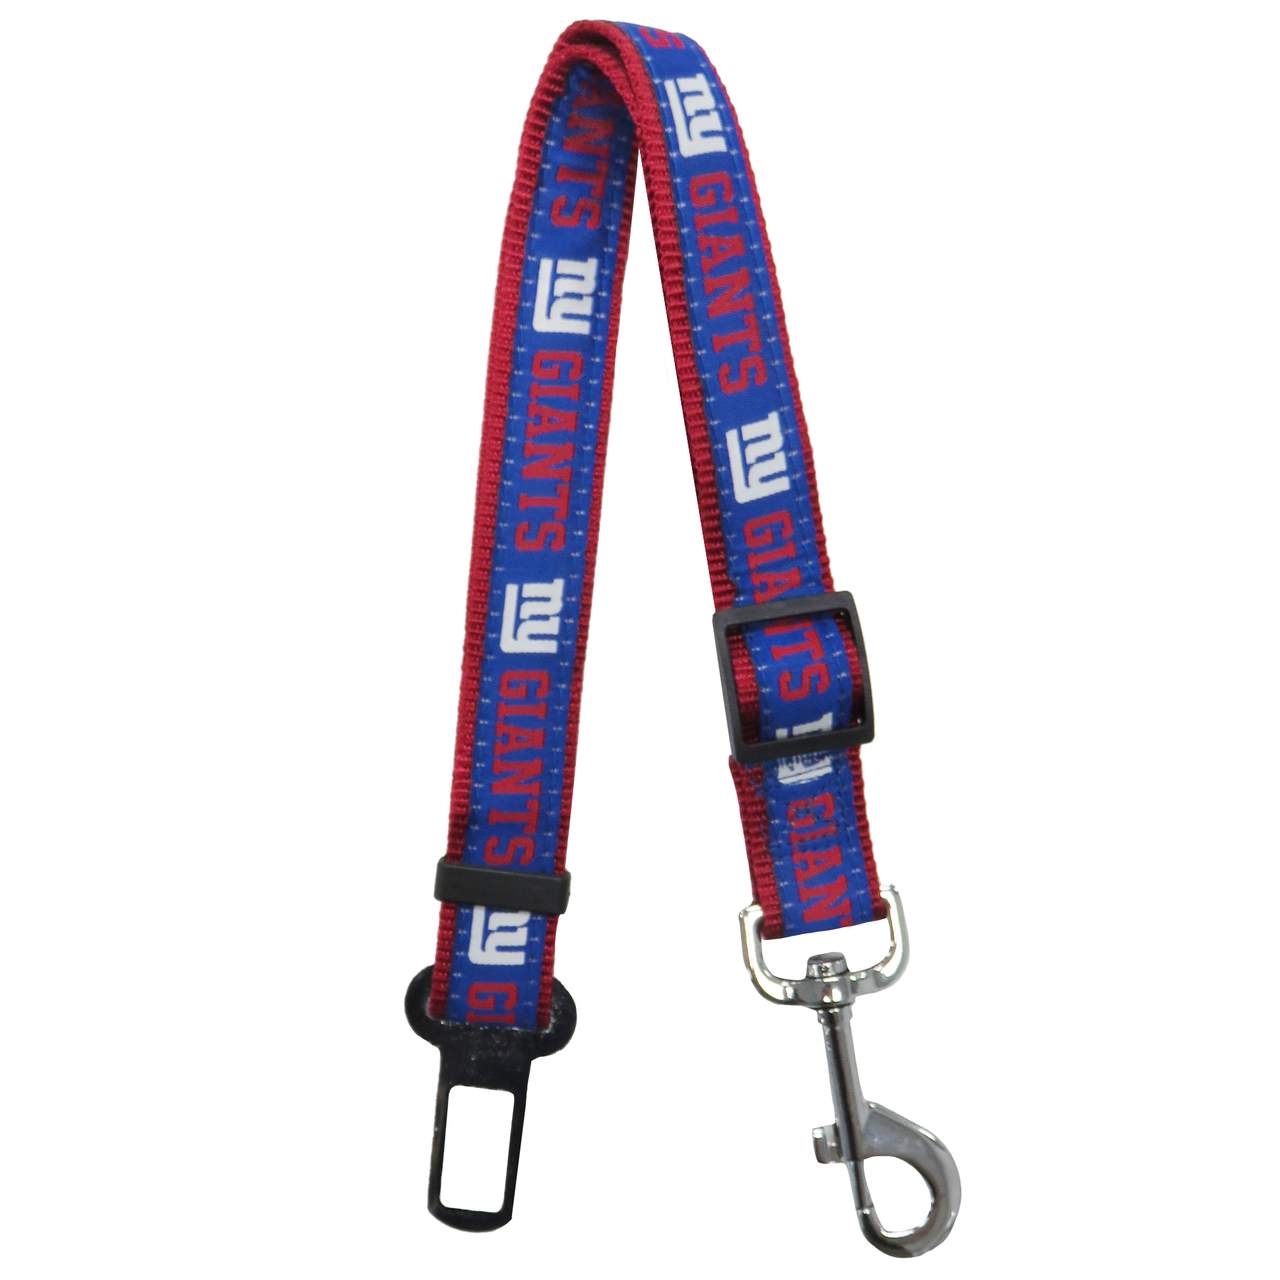 Hot Dog New York Giants Seat Belt Safety Restraint For Dogs